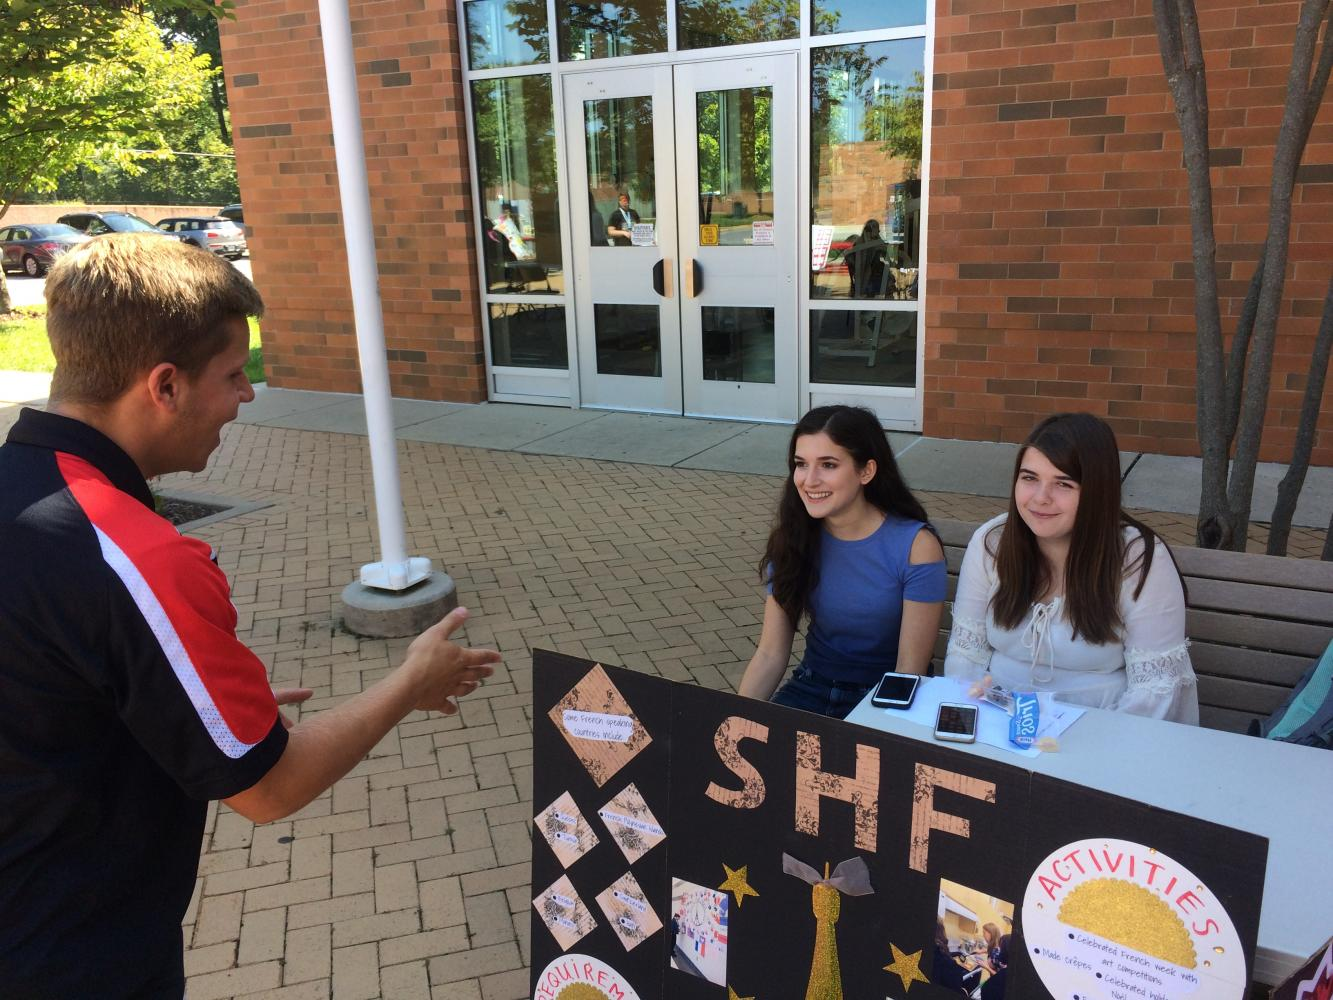 SGA president Jack Dubro talks with French Honor Society president Sophia Schuller and vice president Olivia Hubble about joining their club.